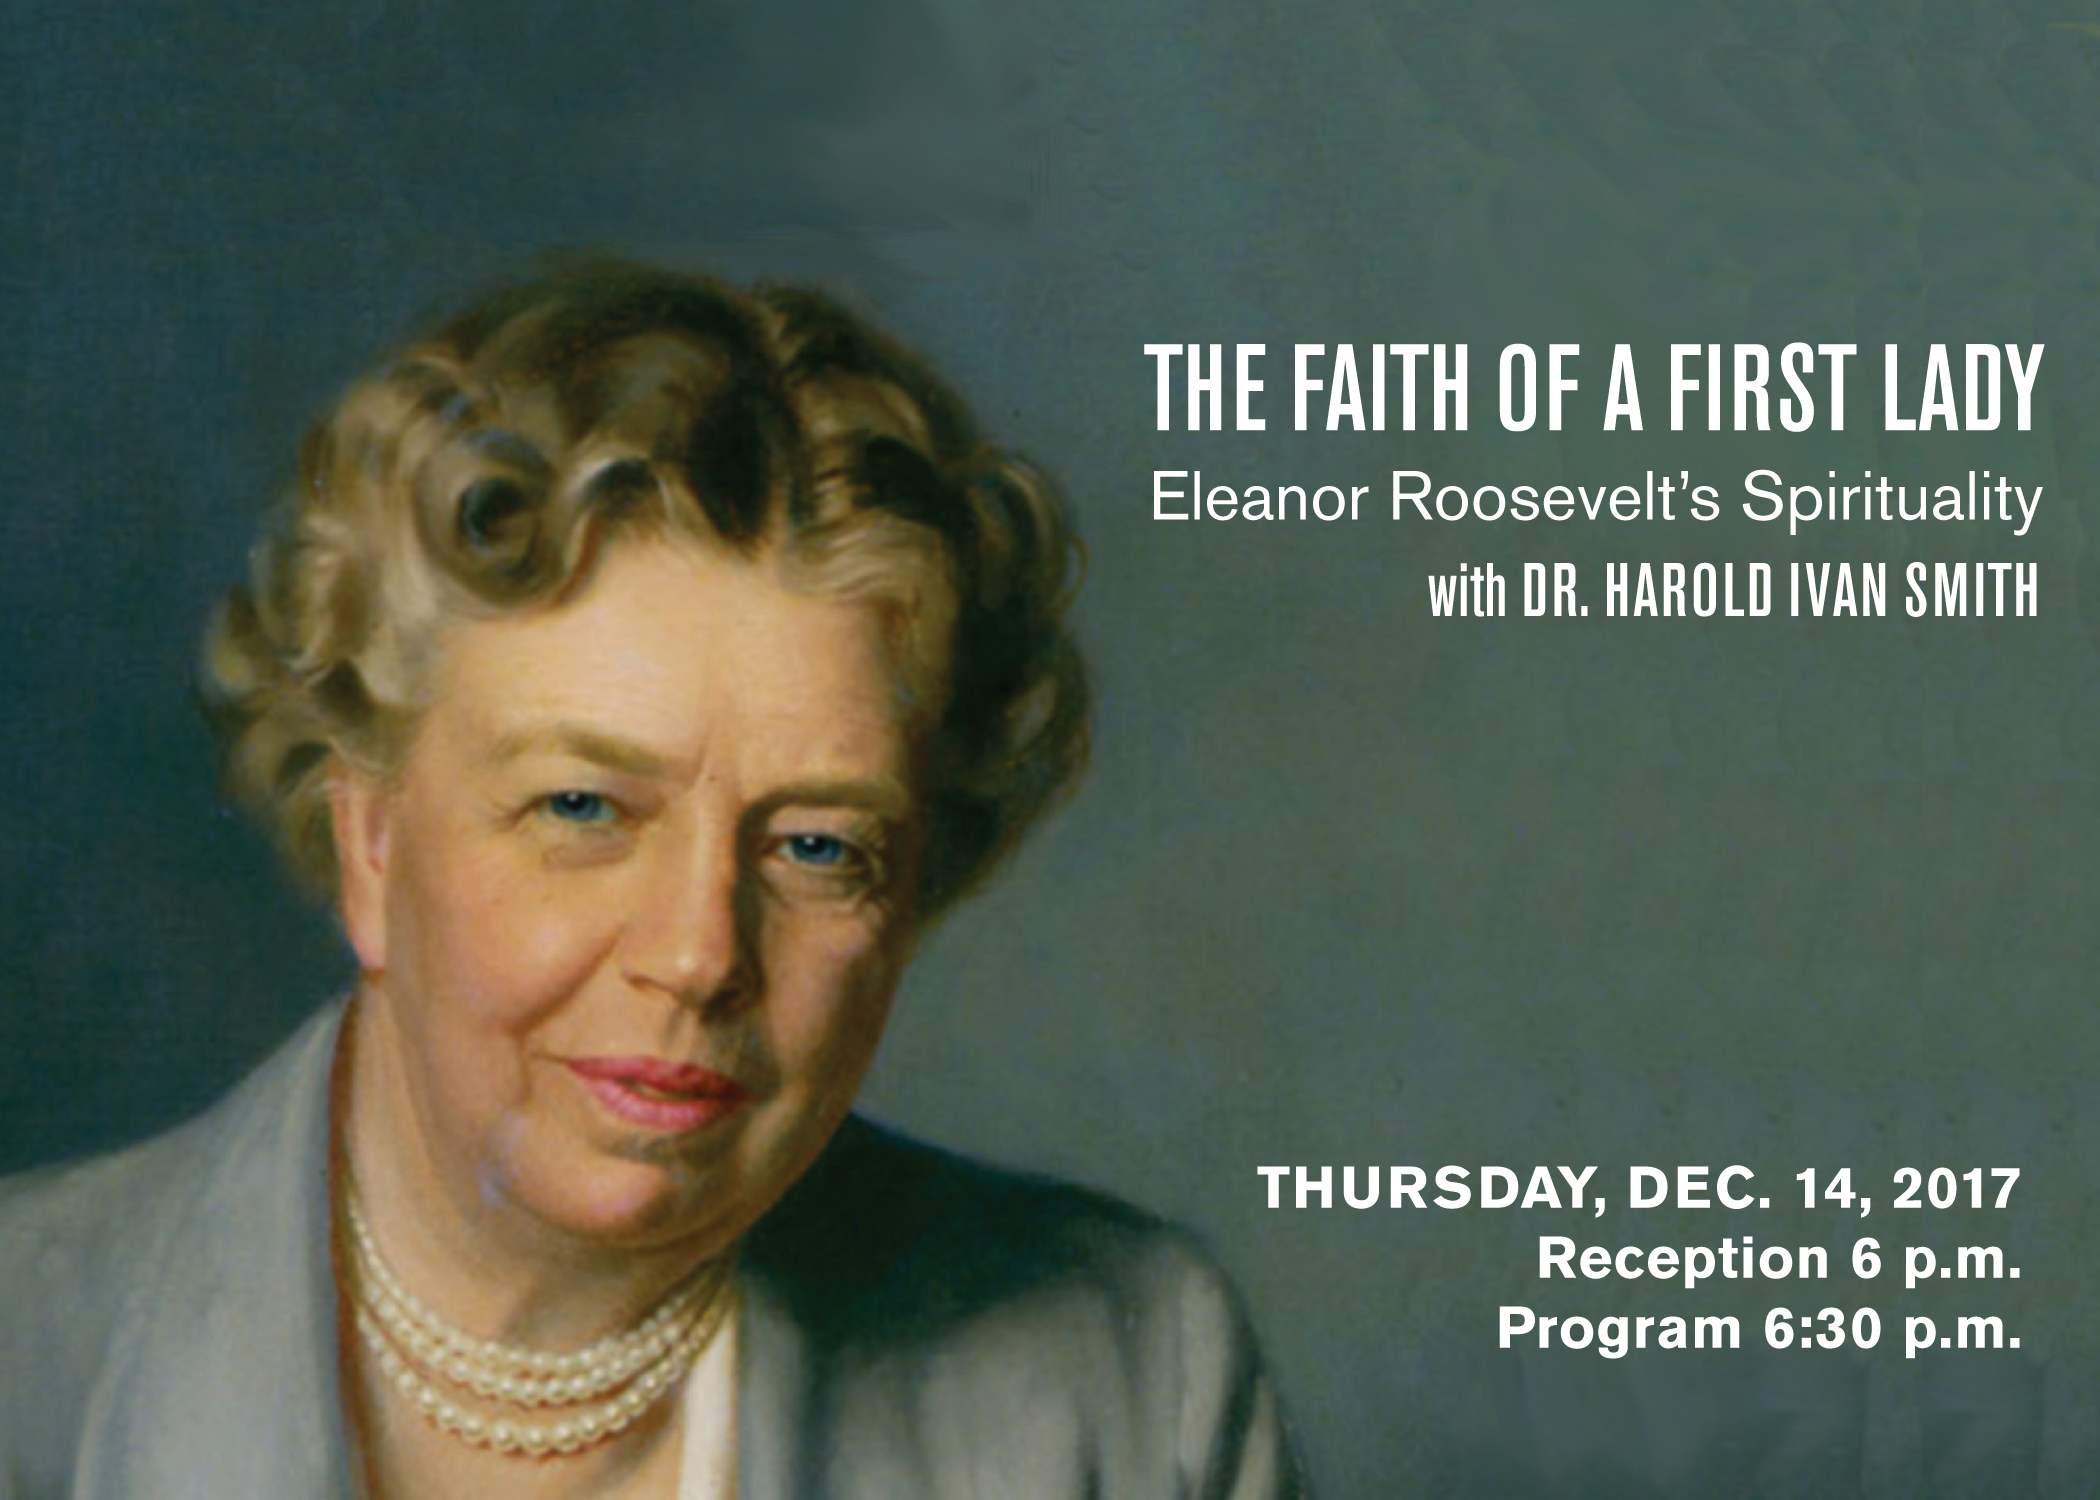 The Faith of a First Lady: Eleanor Roosevelt's Spirituality